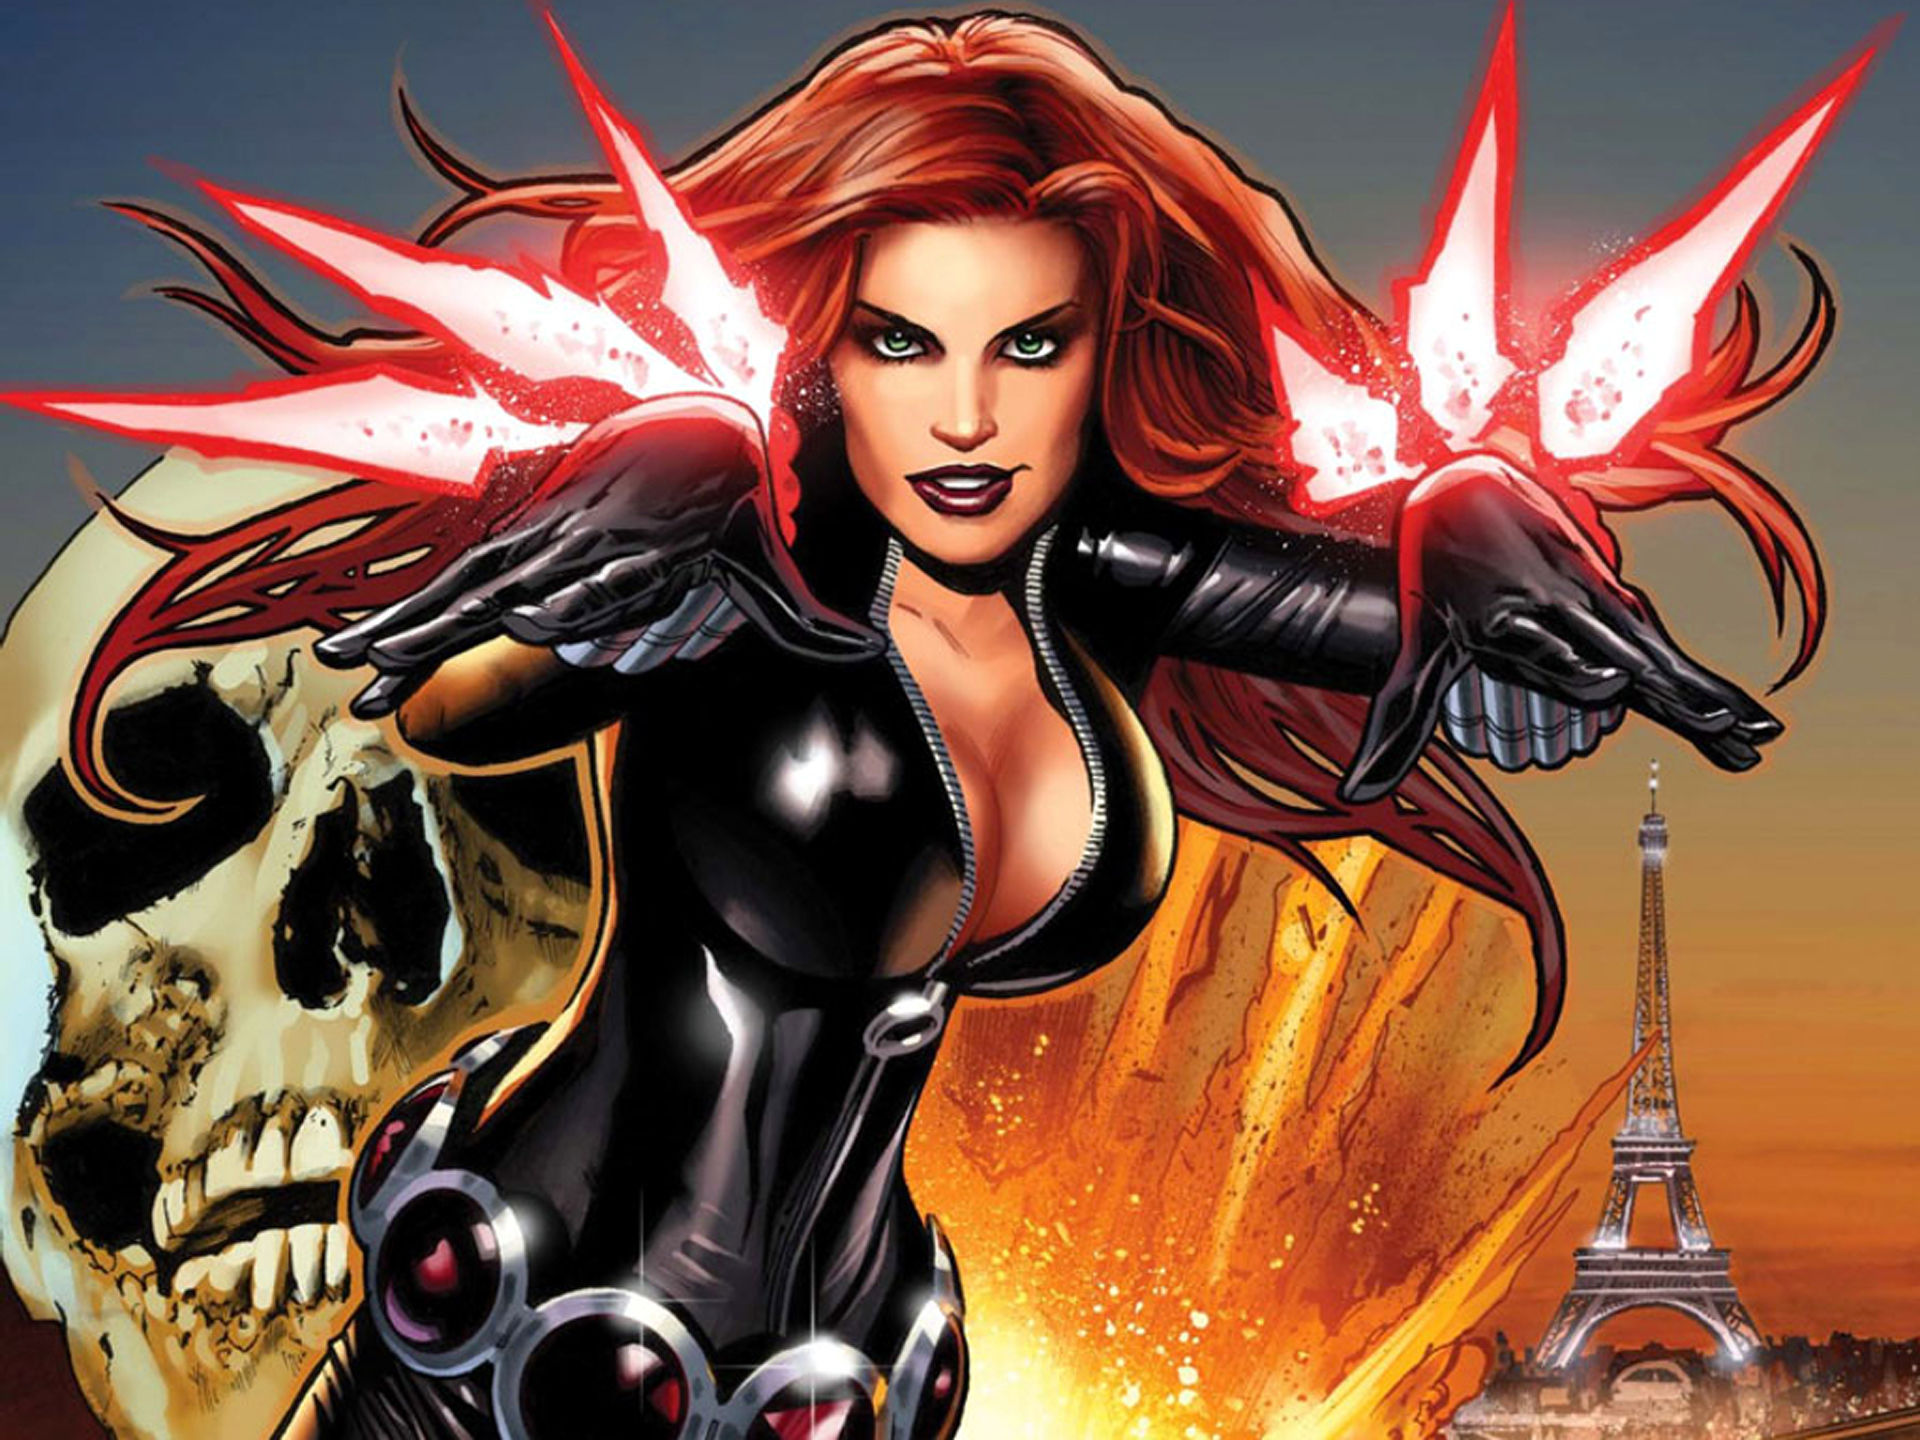 Marvel hot girls From Black Widow To Tigra The 20 Strongest Female Marvel Superheroes 473240 Hot Game And Movie And Ect Characters Photo 39175846 Fanpop